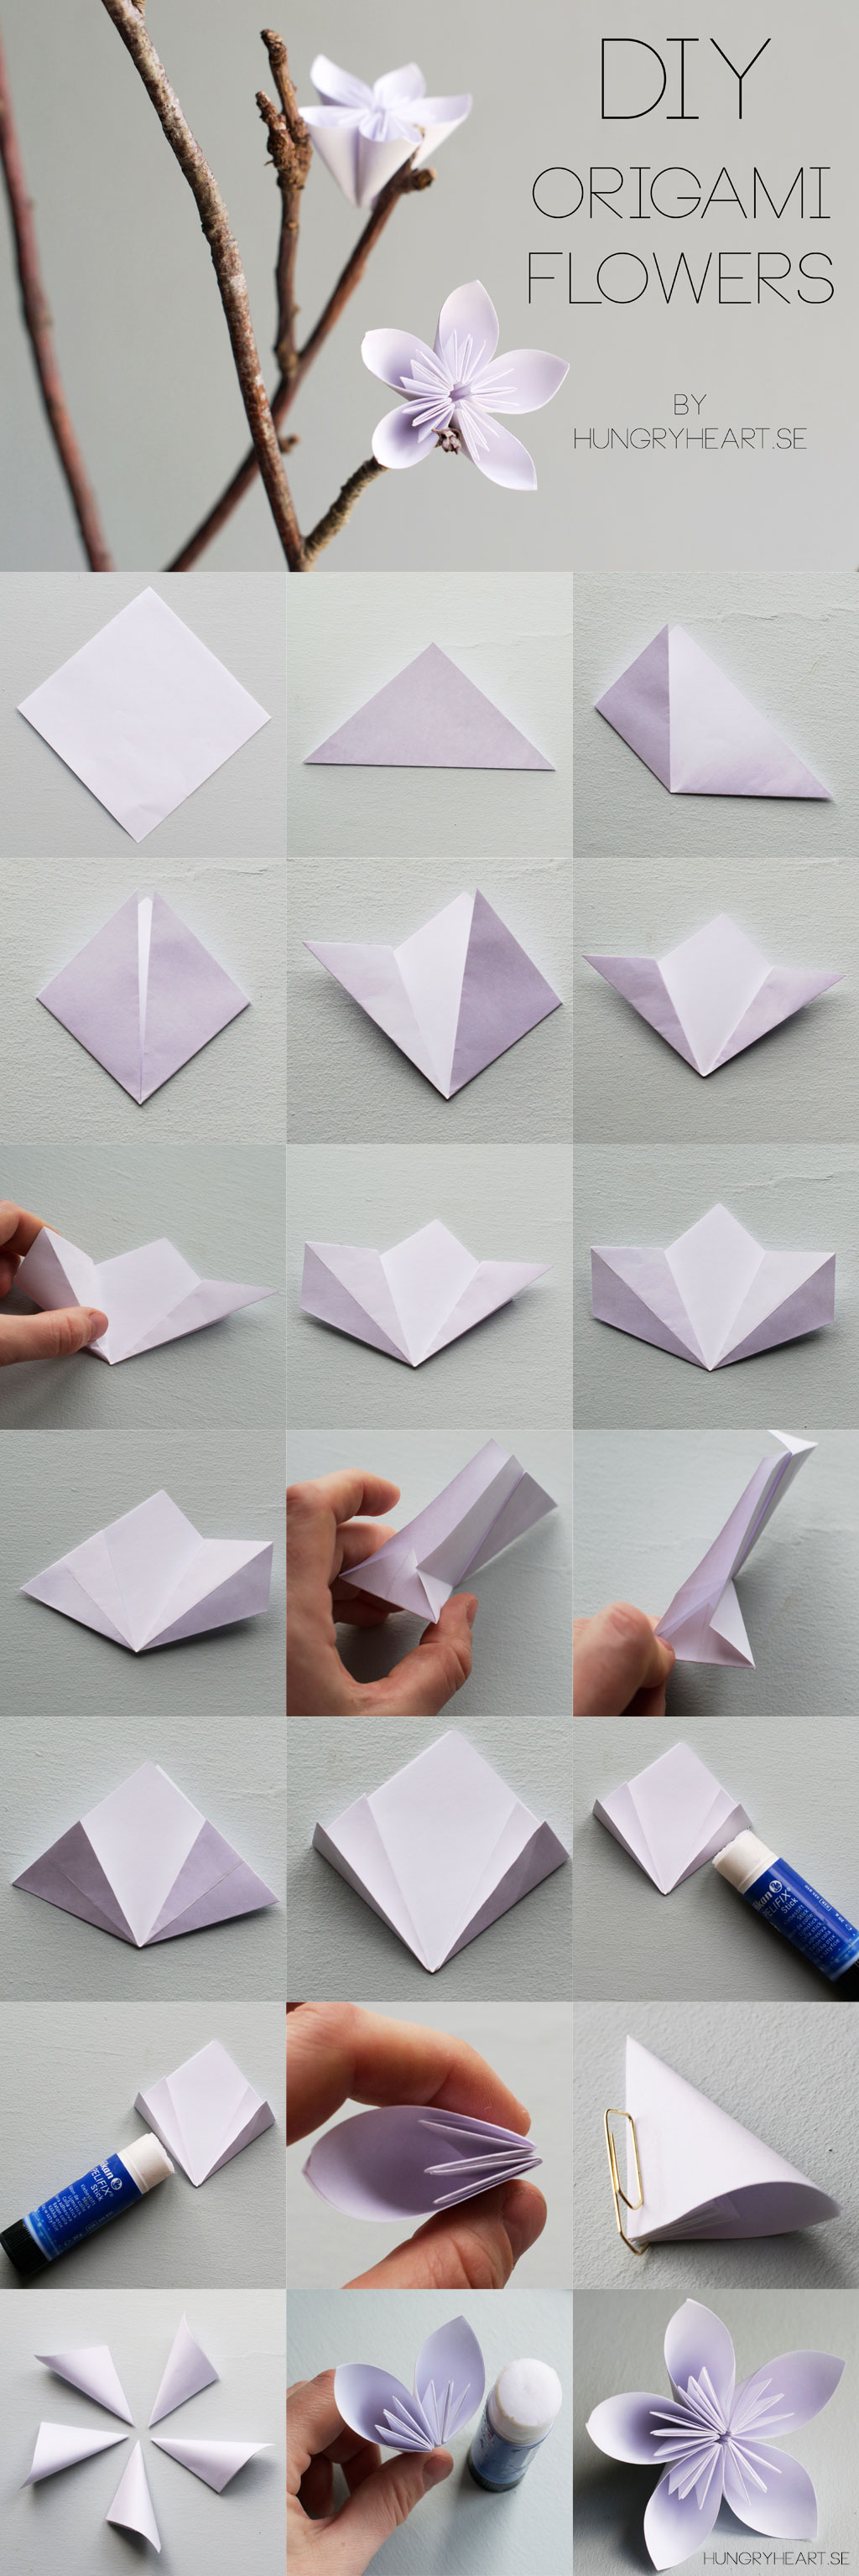 Diy origami flower tutorial hungry heart diy origami flower tutorial mightylinksfo